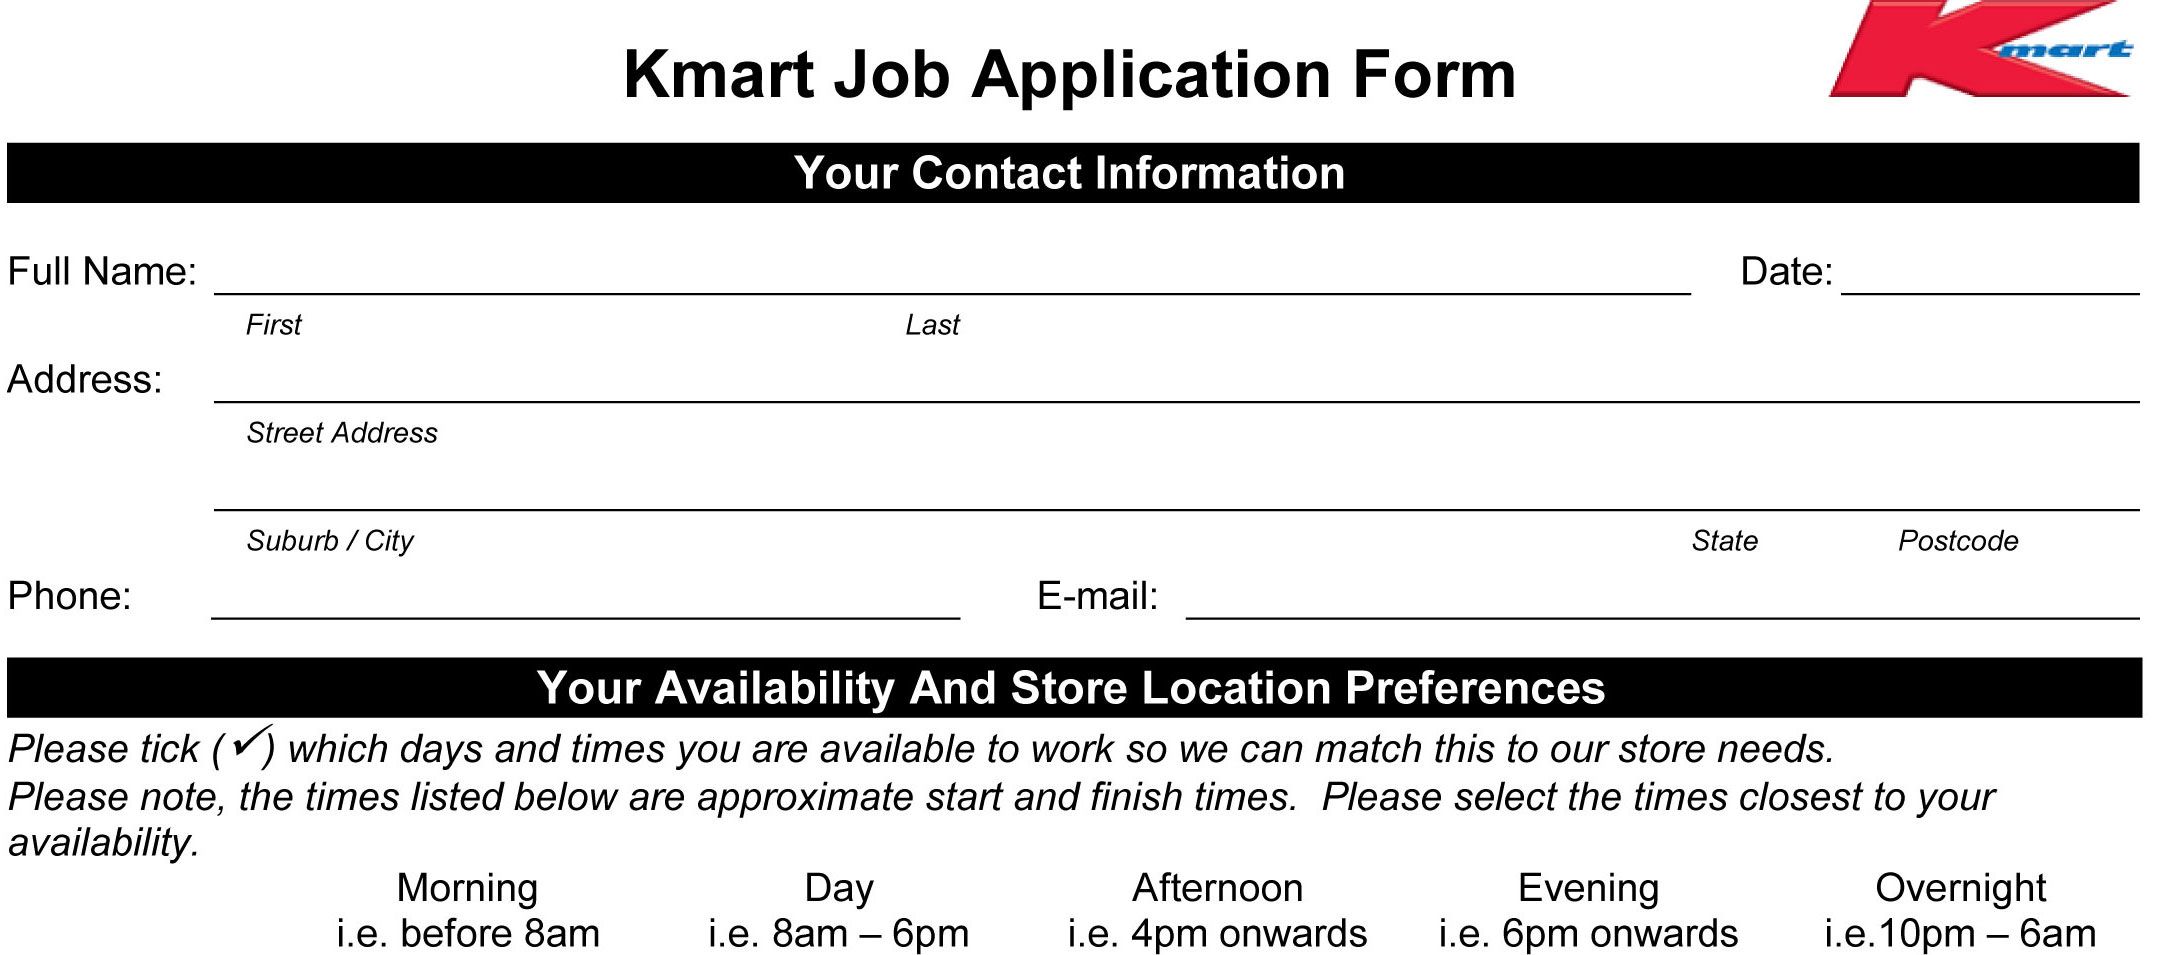 Kmart job application printable job employment forms fill up an electronic form and submit it to complete application process the applicants are selected for interview after review of received applications falaconquin